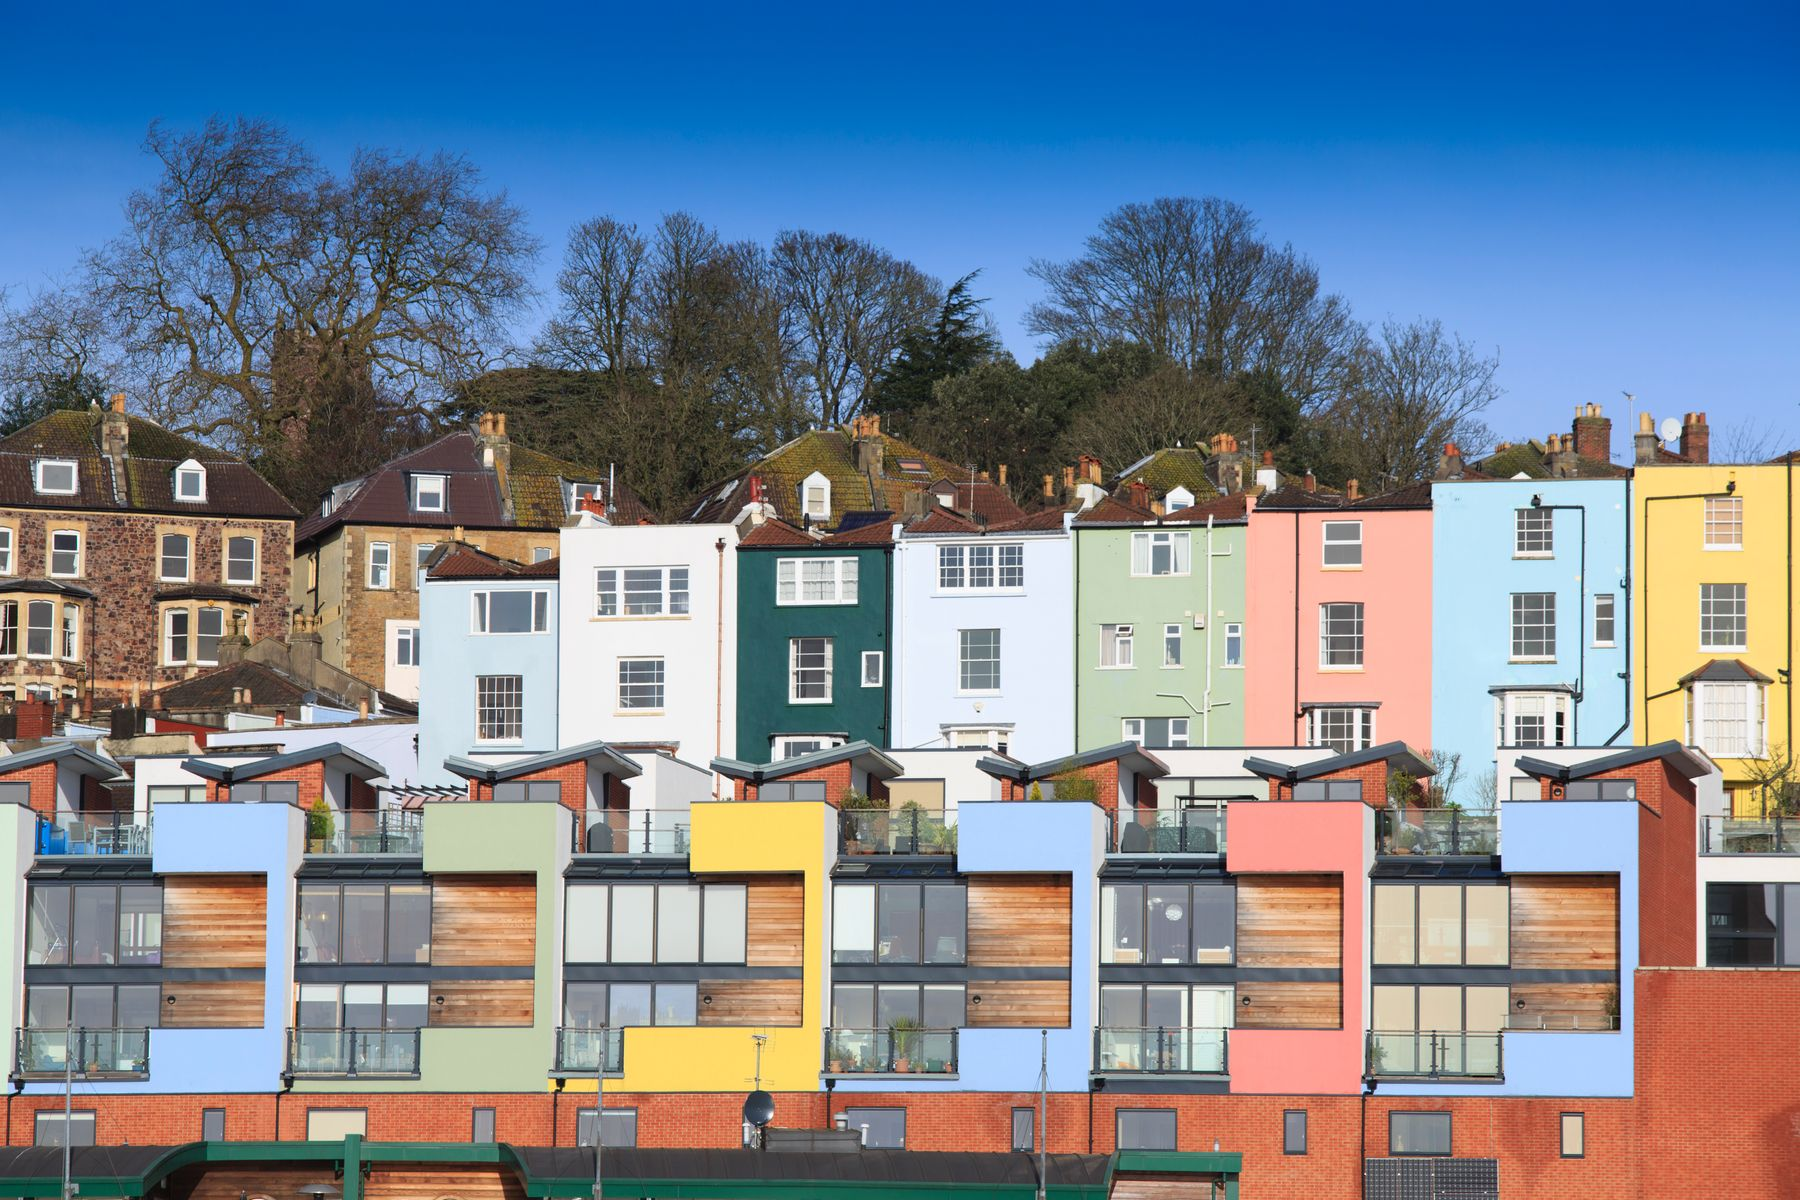 Colourful homes in Bristol, one of the best city breaks for UK spring holidays 2021